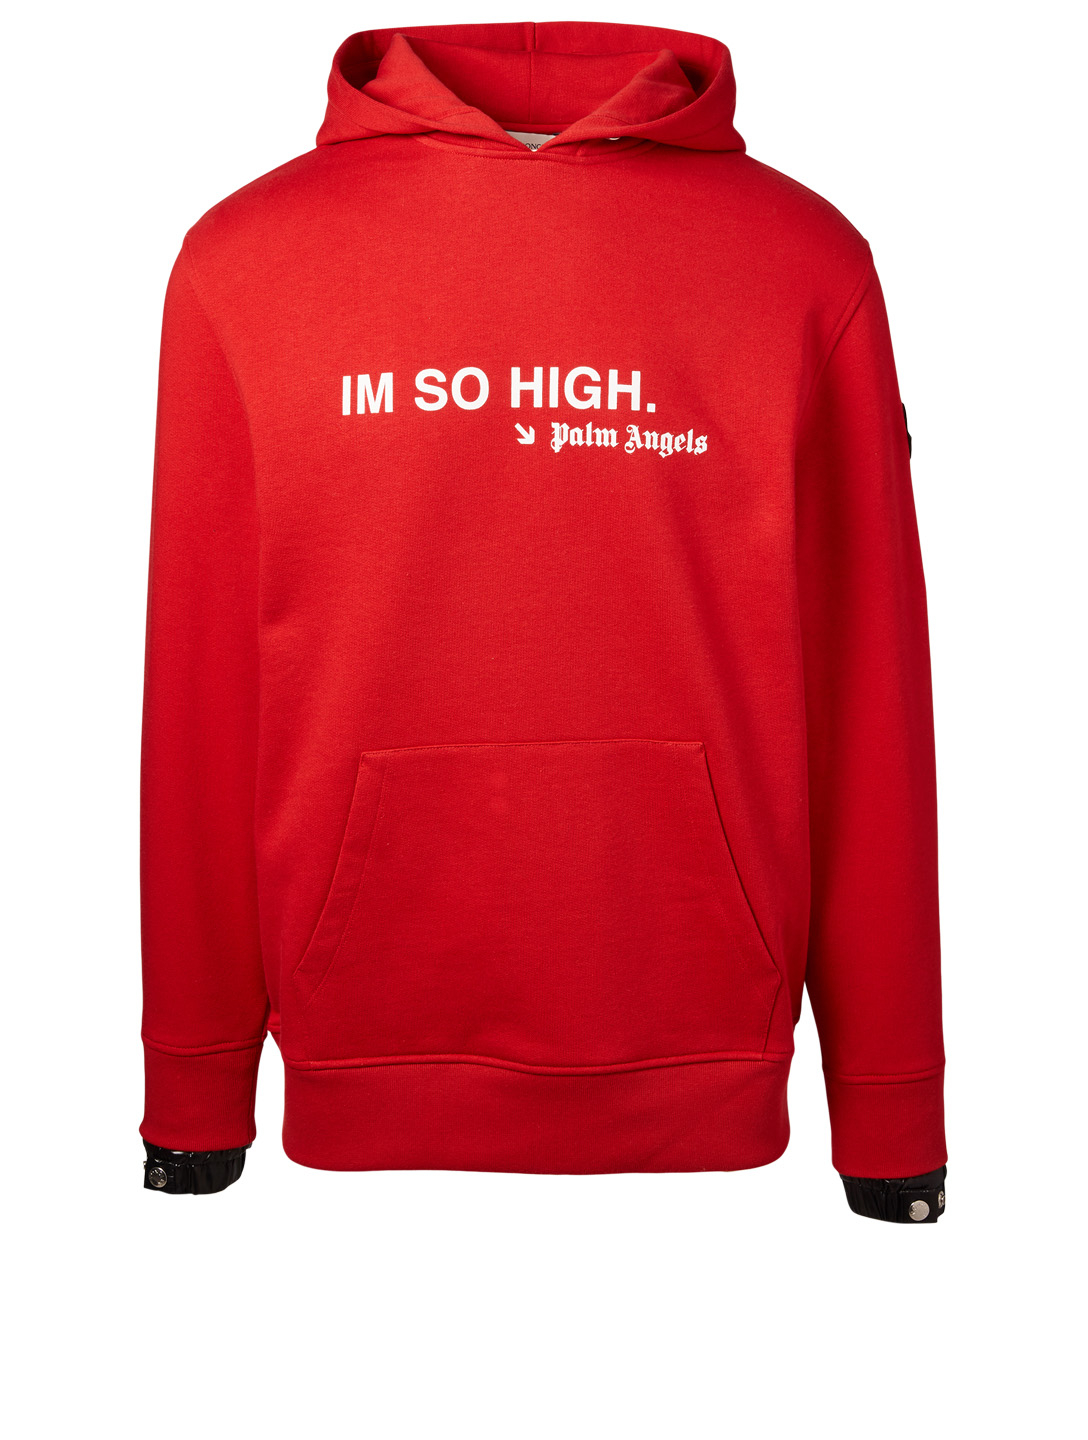 MONCLER GENIUS Pull à capuche Im So High 8 Moncler x Palm Angels Hommes Rouge